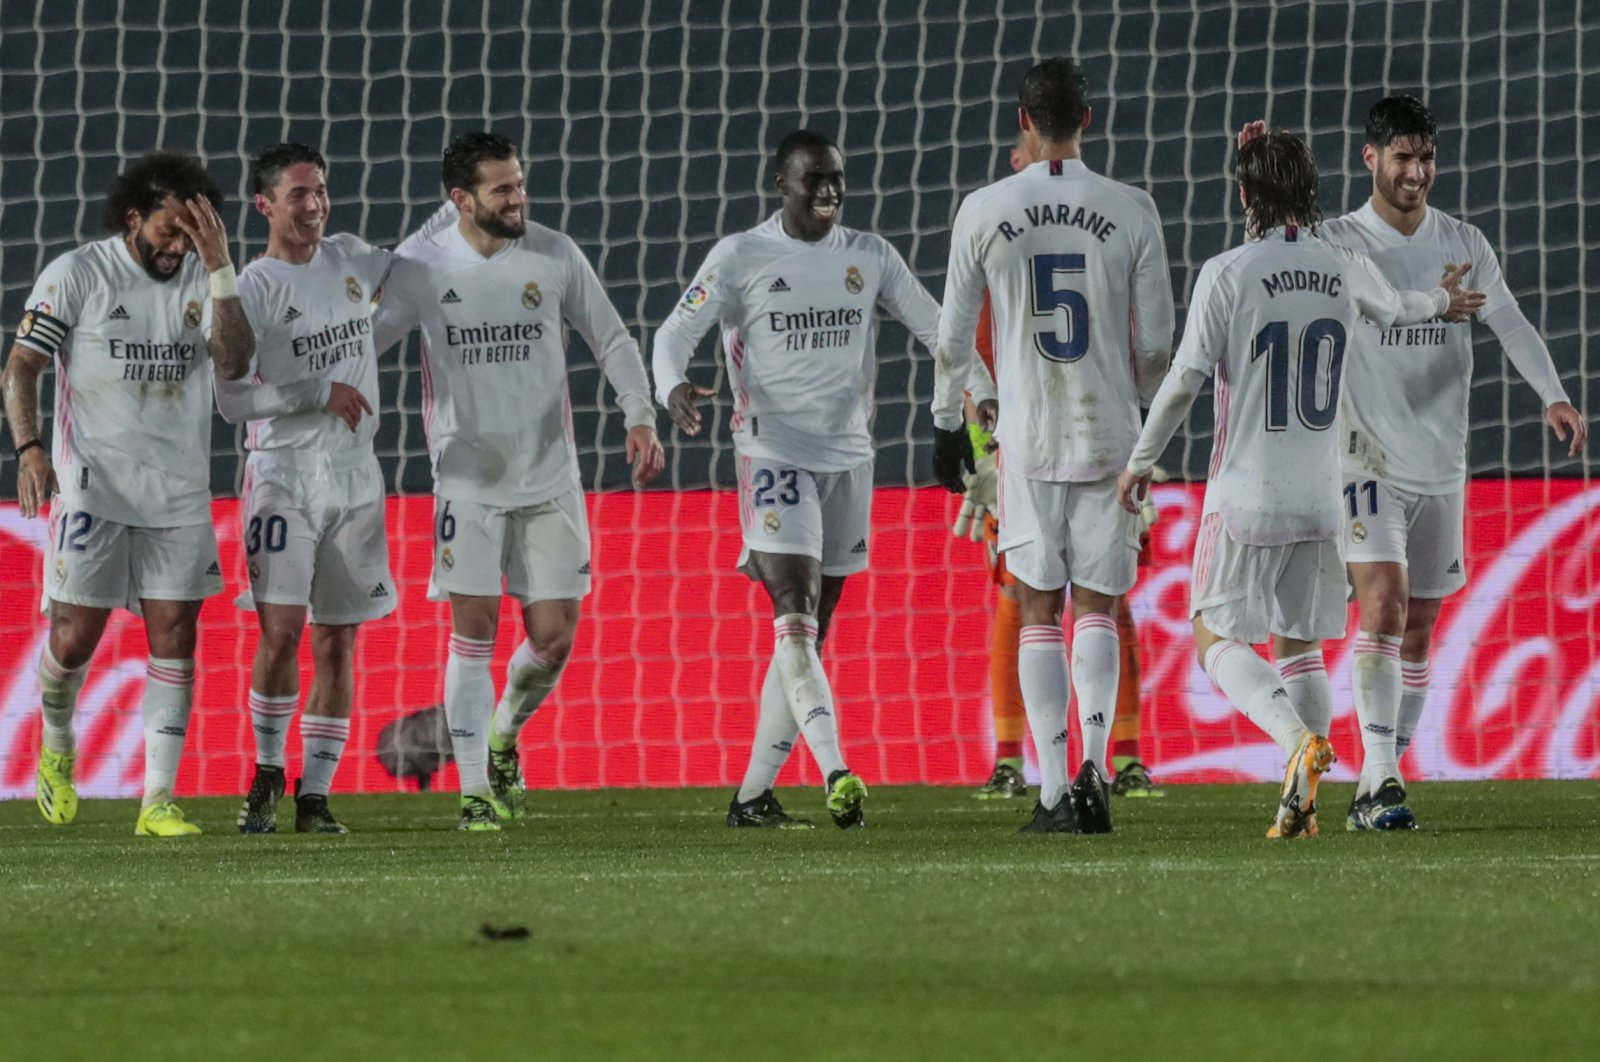 Real Madrid's Ferland Mendy (C) celebrates after scoring his side's second goal during a La Liga match against Getafe at Alfredo di Stefano Stadium, Madrid, Spain, Feb. 9, 2021. (AP Photo)